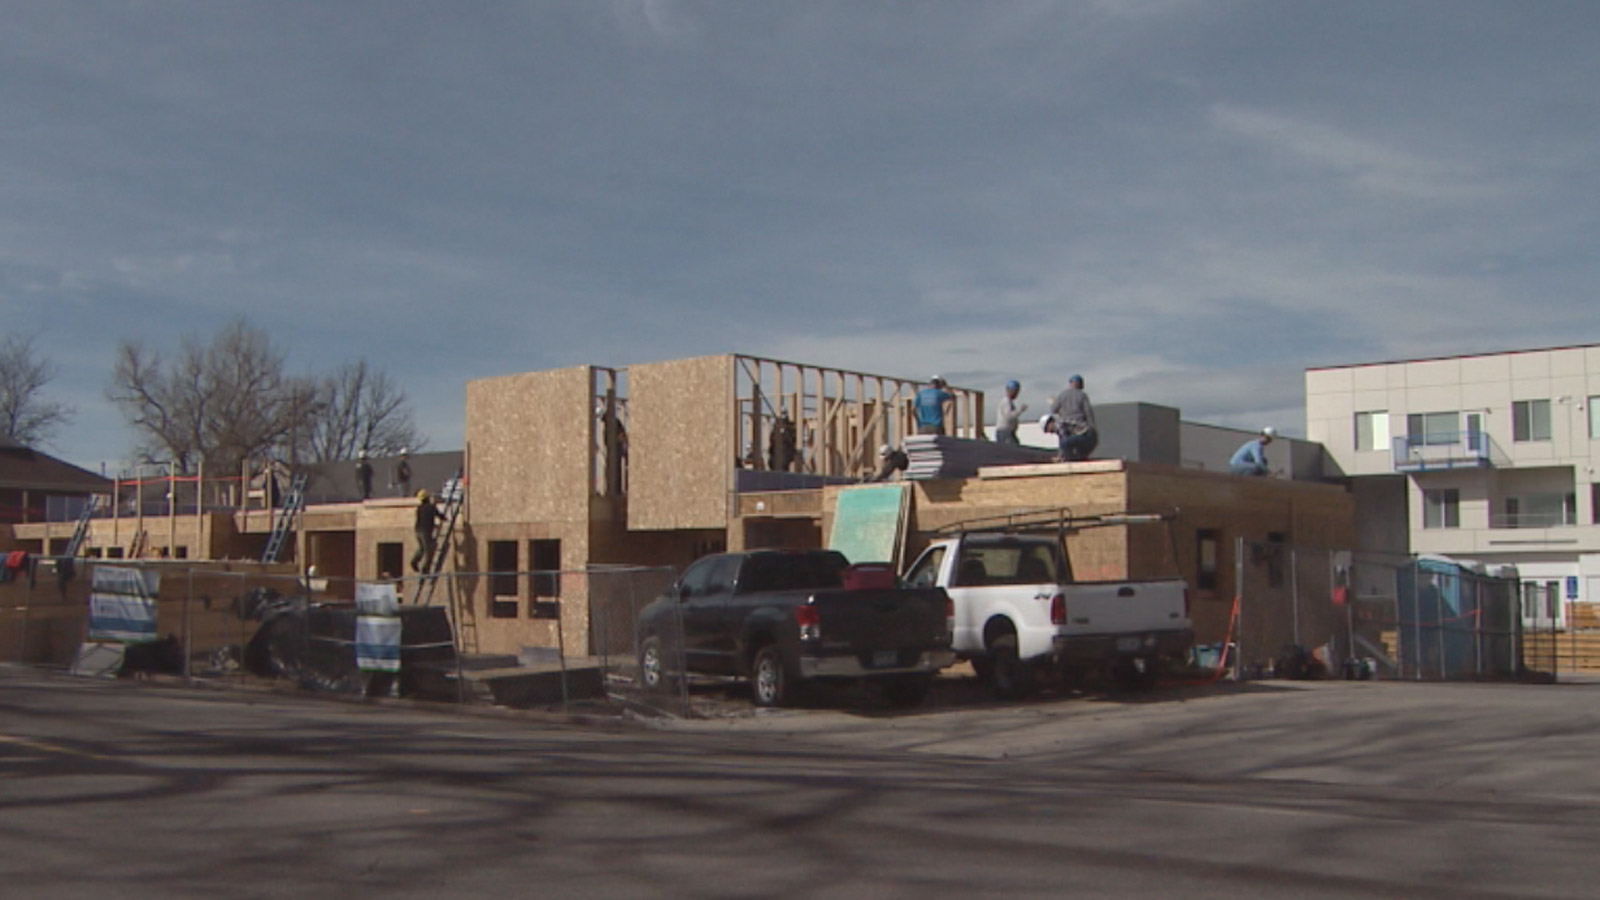 New Habitat for Humanity townhomes at 9th and Mariposa (credit: CBS)